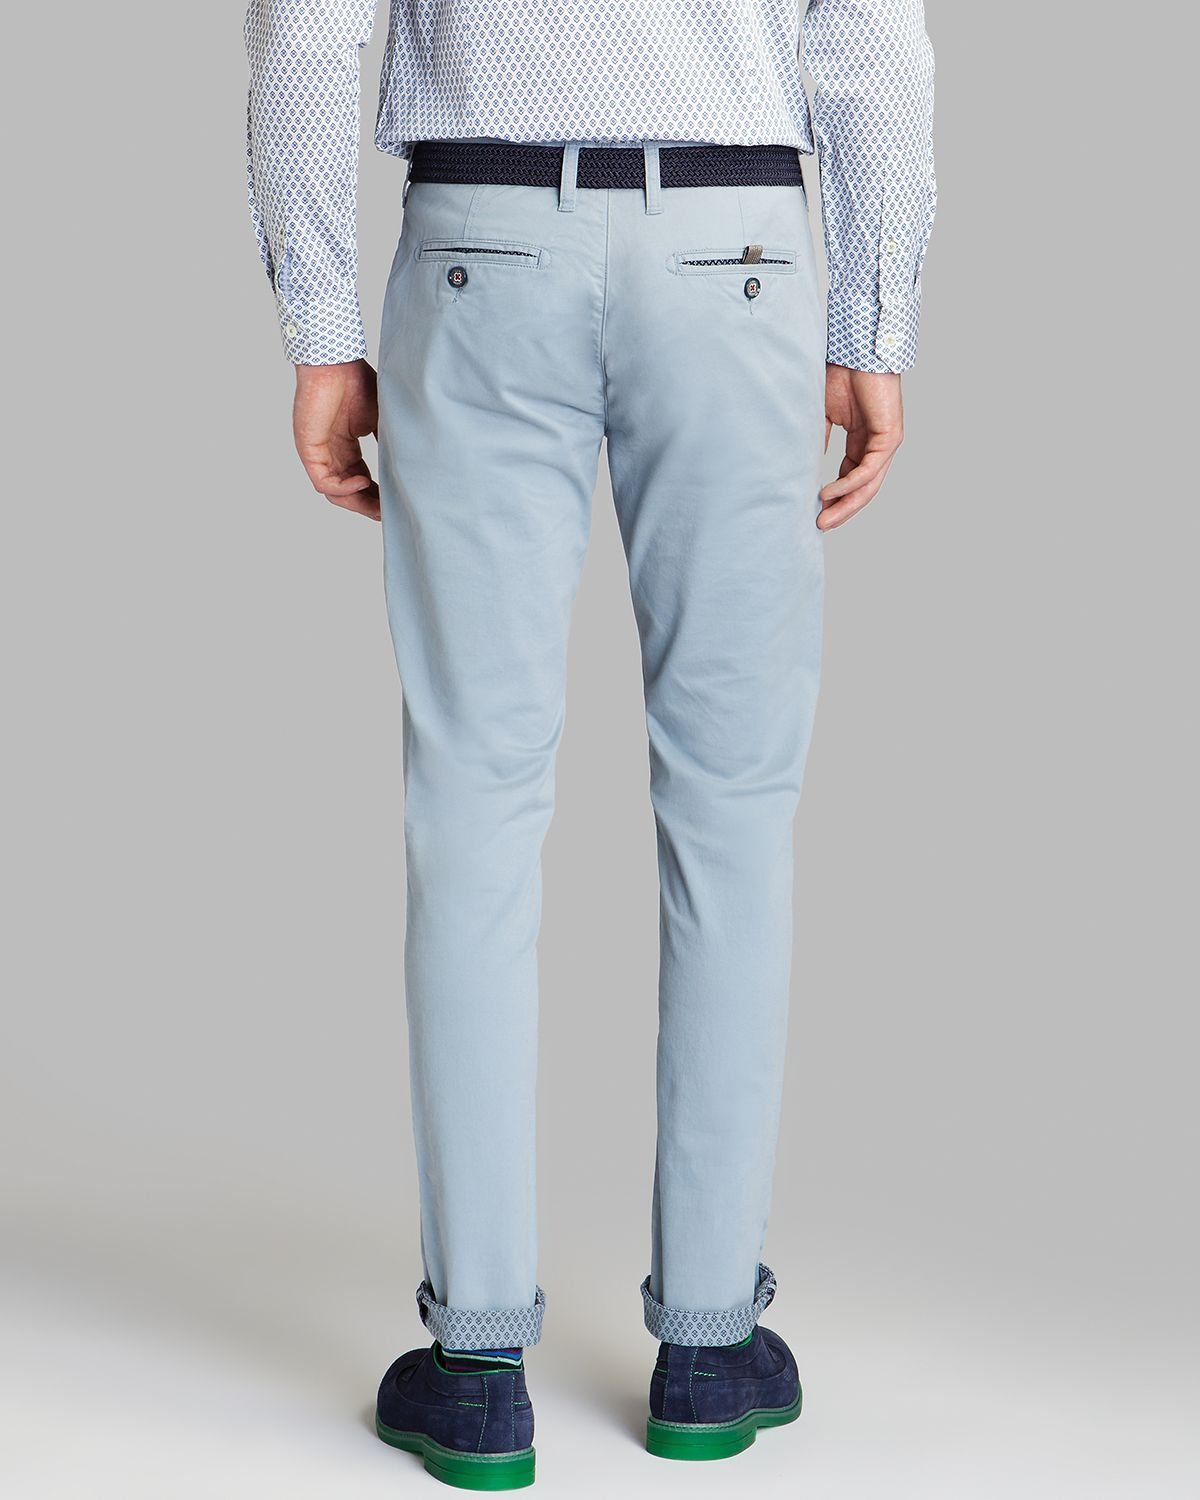 8fa578157 Lyst - Ted Baker Mordord Slim Fit Chino Pants in Blue for Men